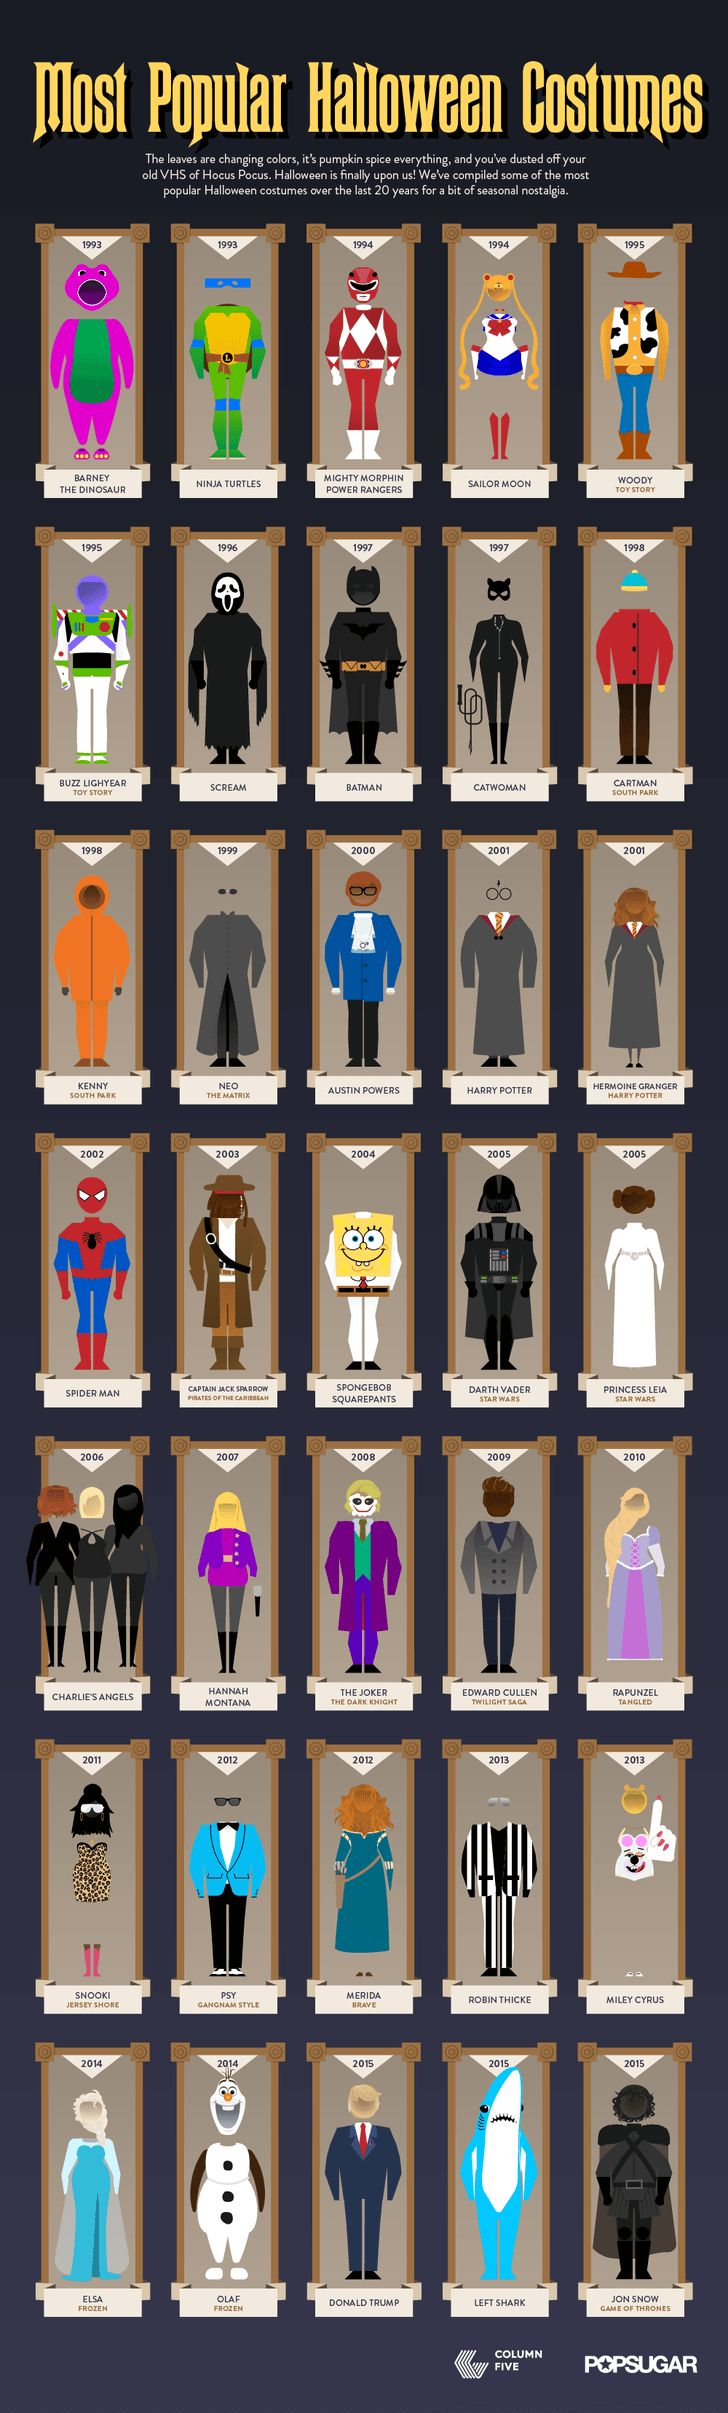 Looking back at the most popular Halloween costumes since 1993 will make you nostalgic for the good old days and may make you cringe a little bit as well